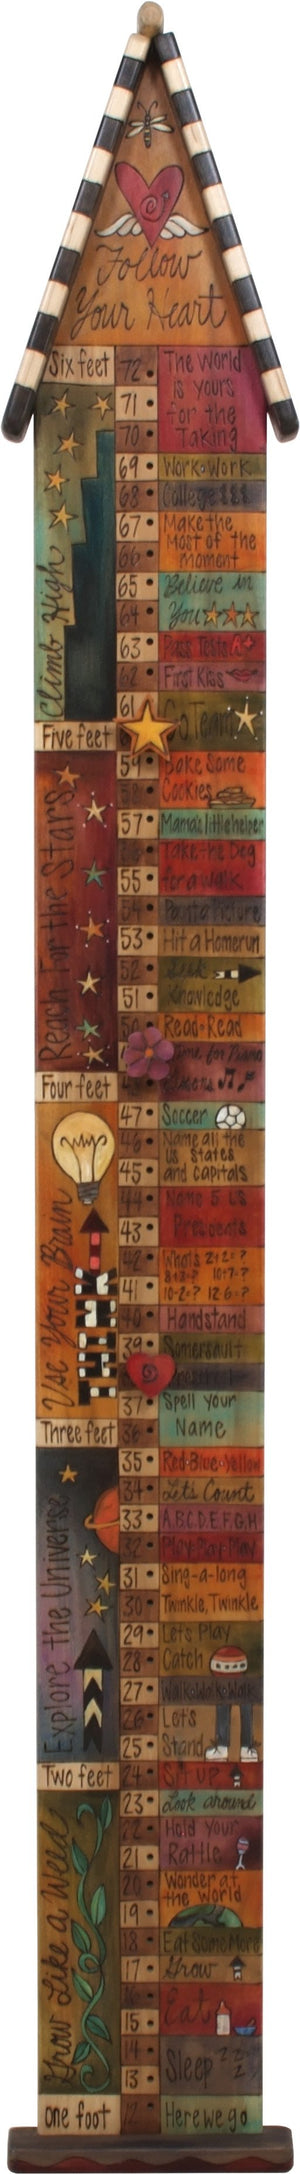 "Growth Chart with Pegs –  ""Follow Your Heart"" growth chart with pegs with heart and wings motif"